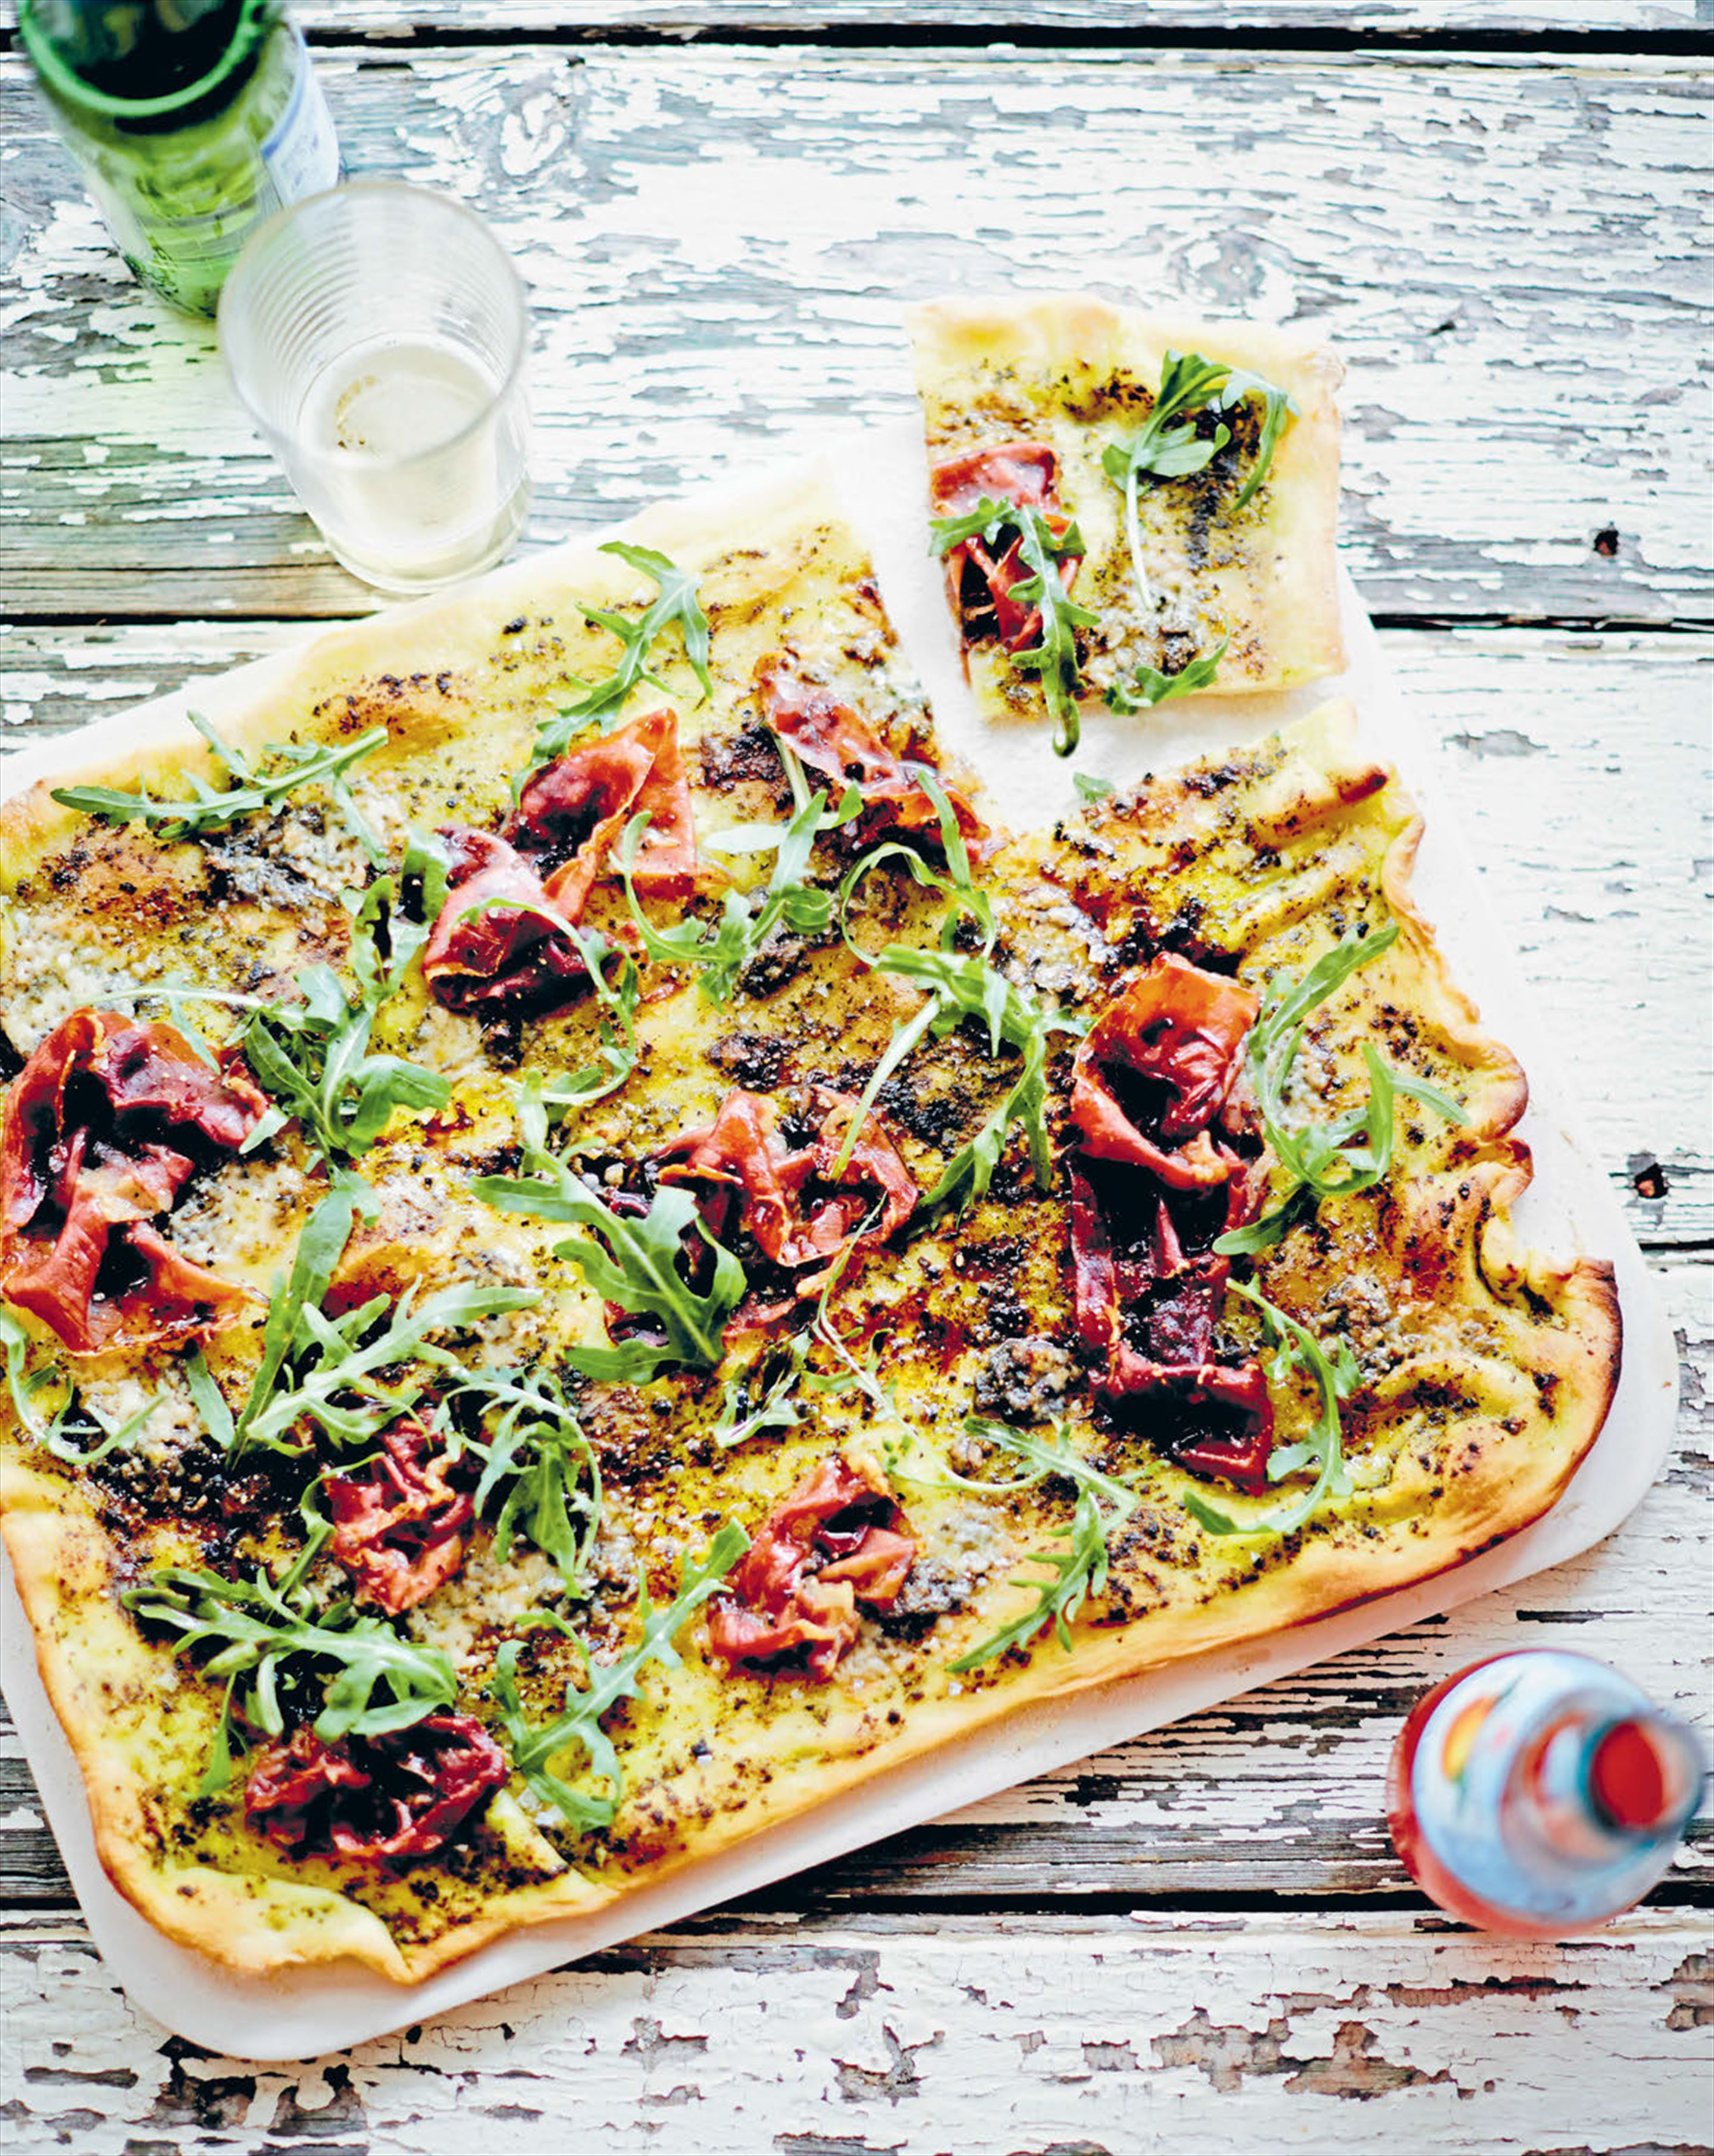 Gorgonzola, prosciutto, rocket and pesto pizza